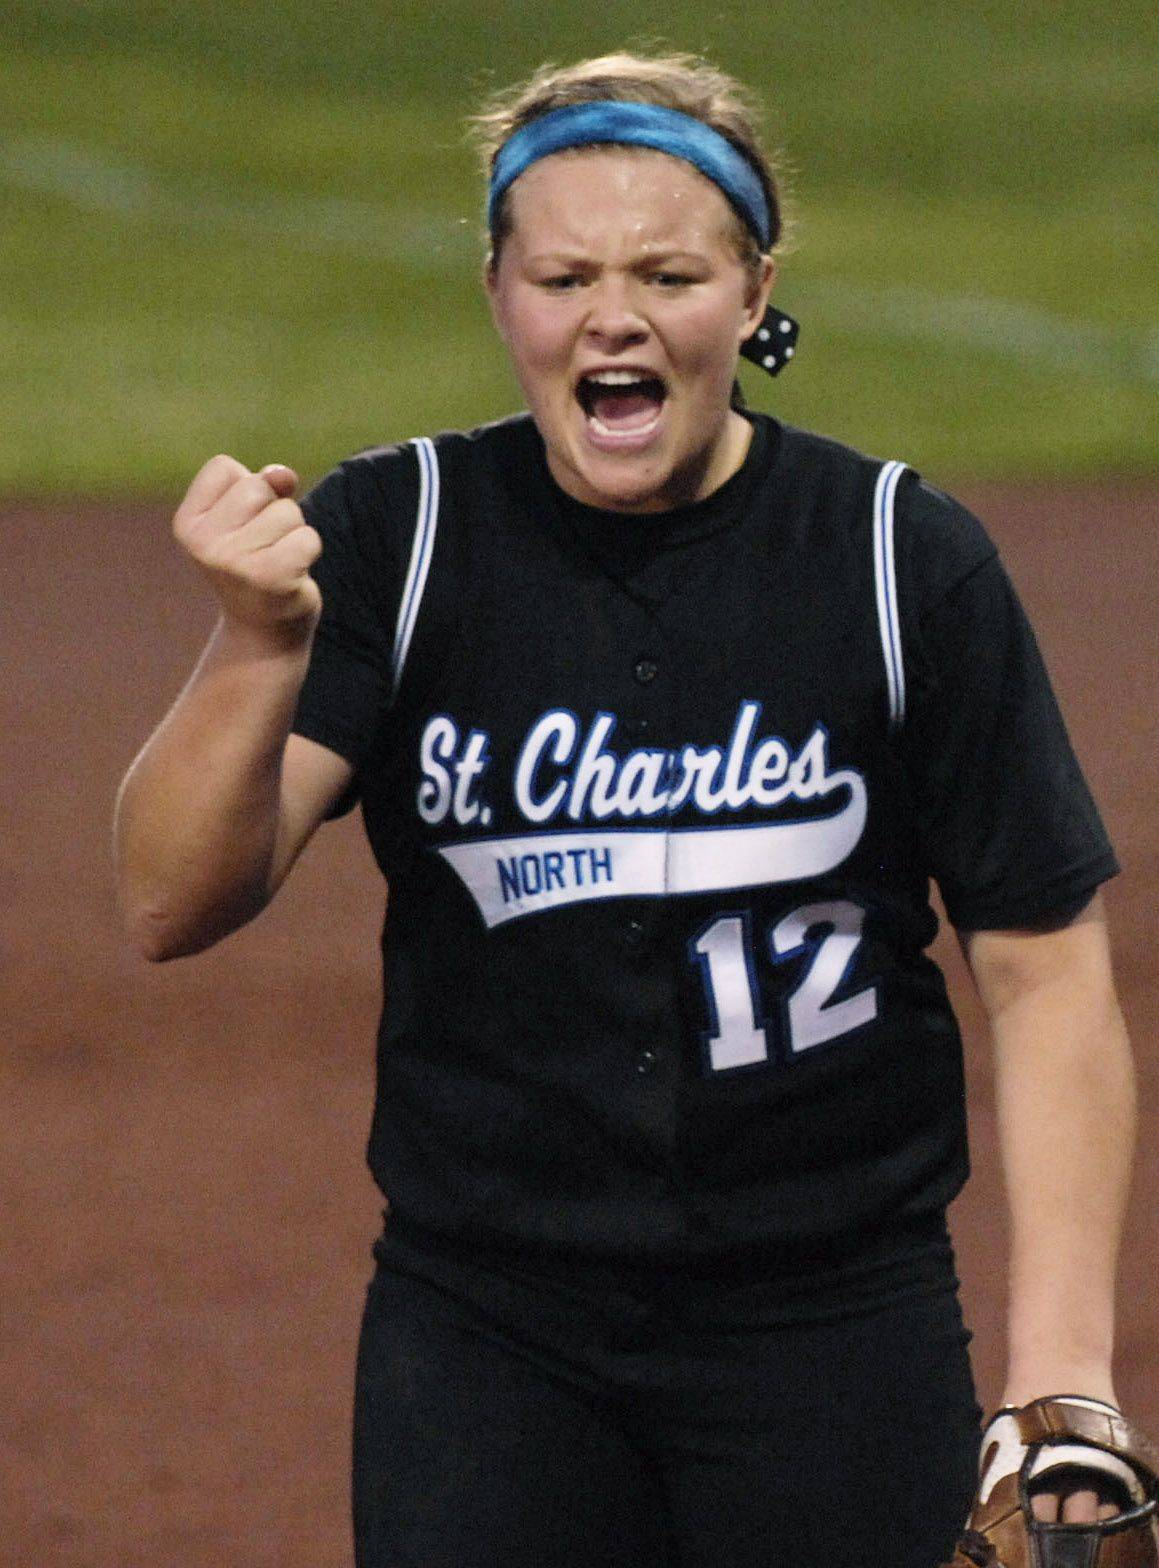 St. Charles North pitcher Amanda Ciran against DeKalb in the class 4A supersectional at Northern Illinois University Monday.